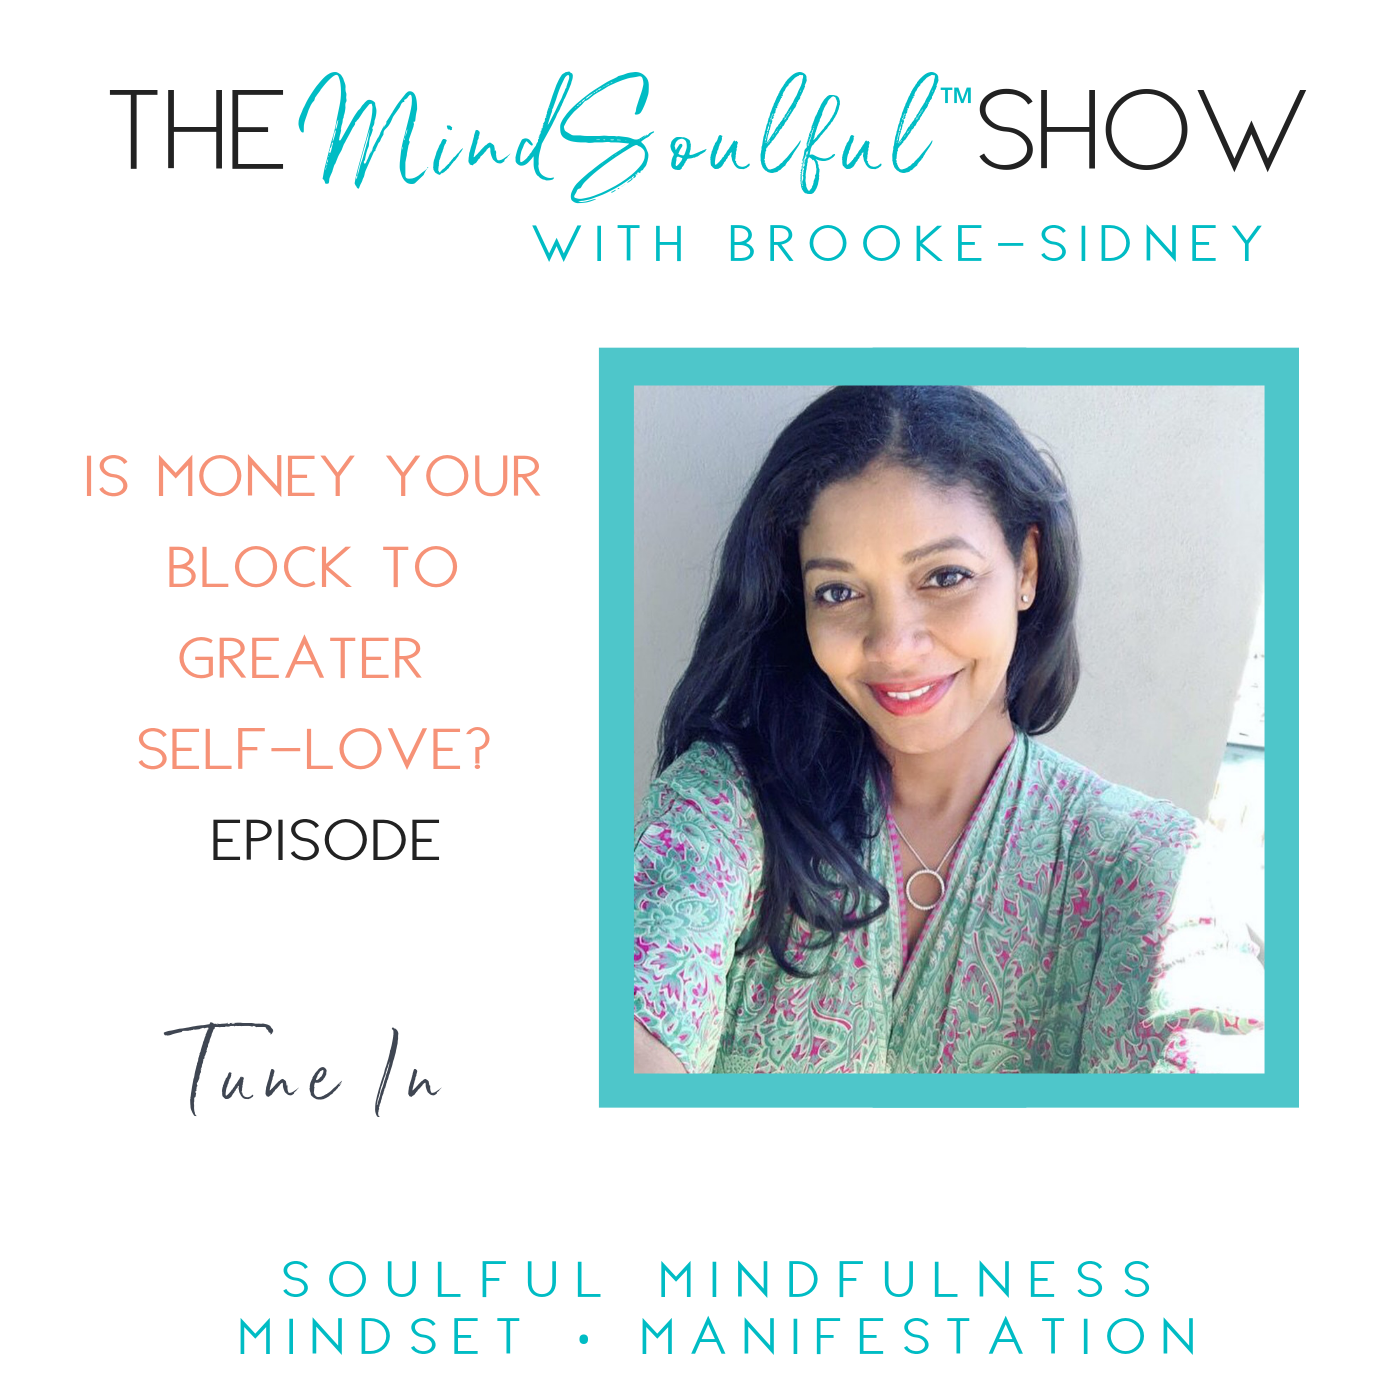 THE MINDSOULFUL SHOW - IS MONEY YOUR BLOCK TO GREATER  SELF-LOVE? Episode.png